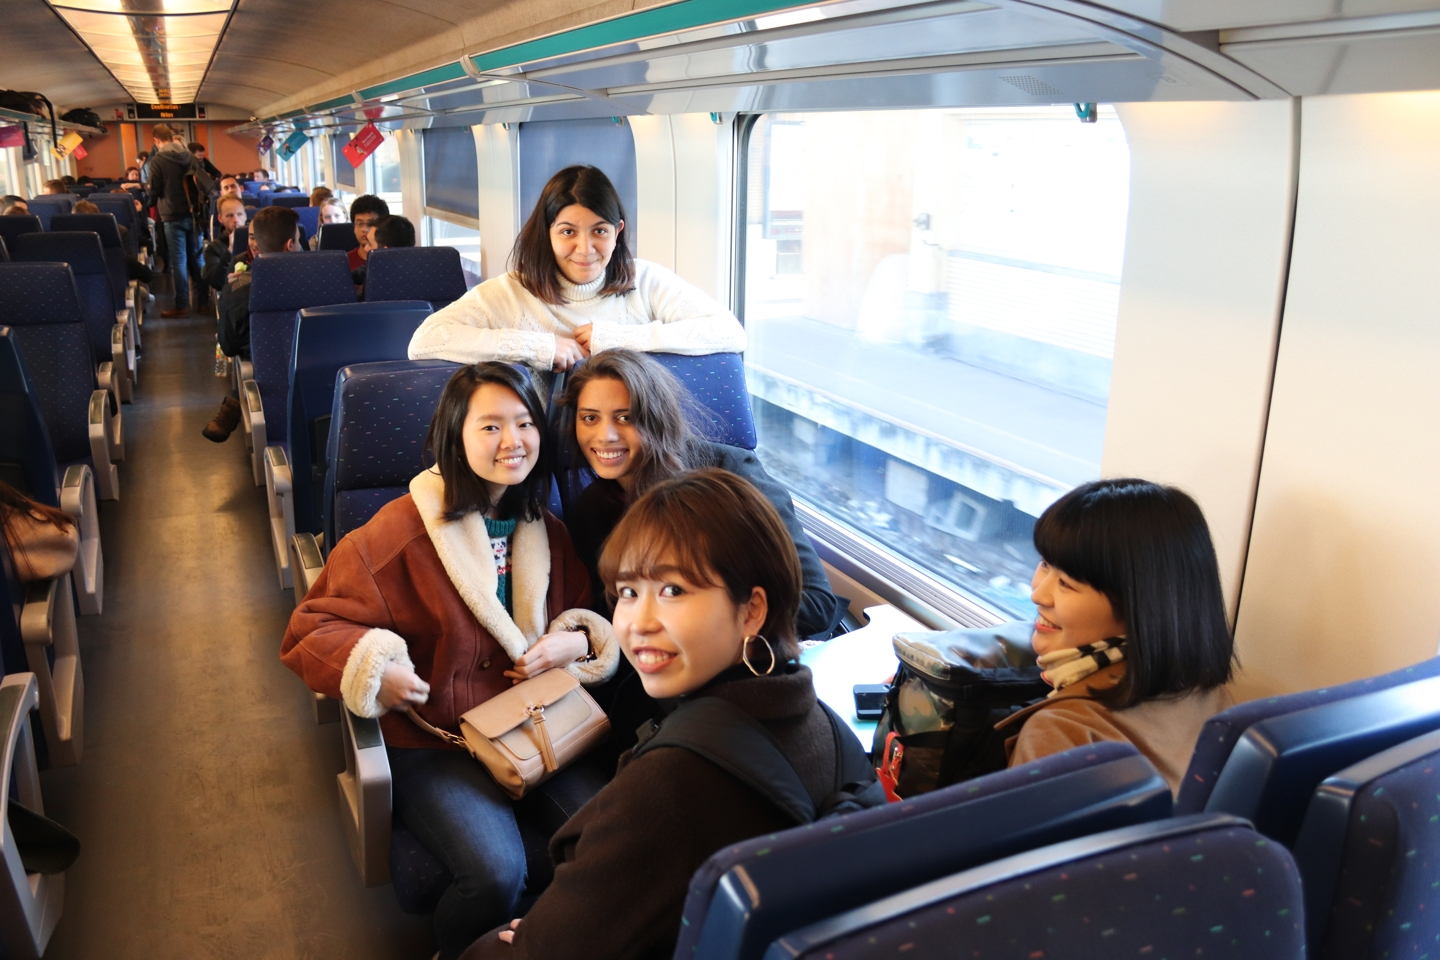 Students in the train to Brussels